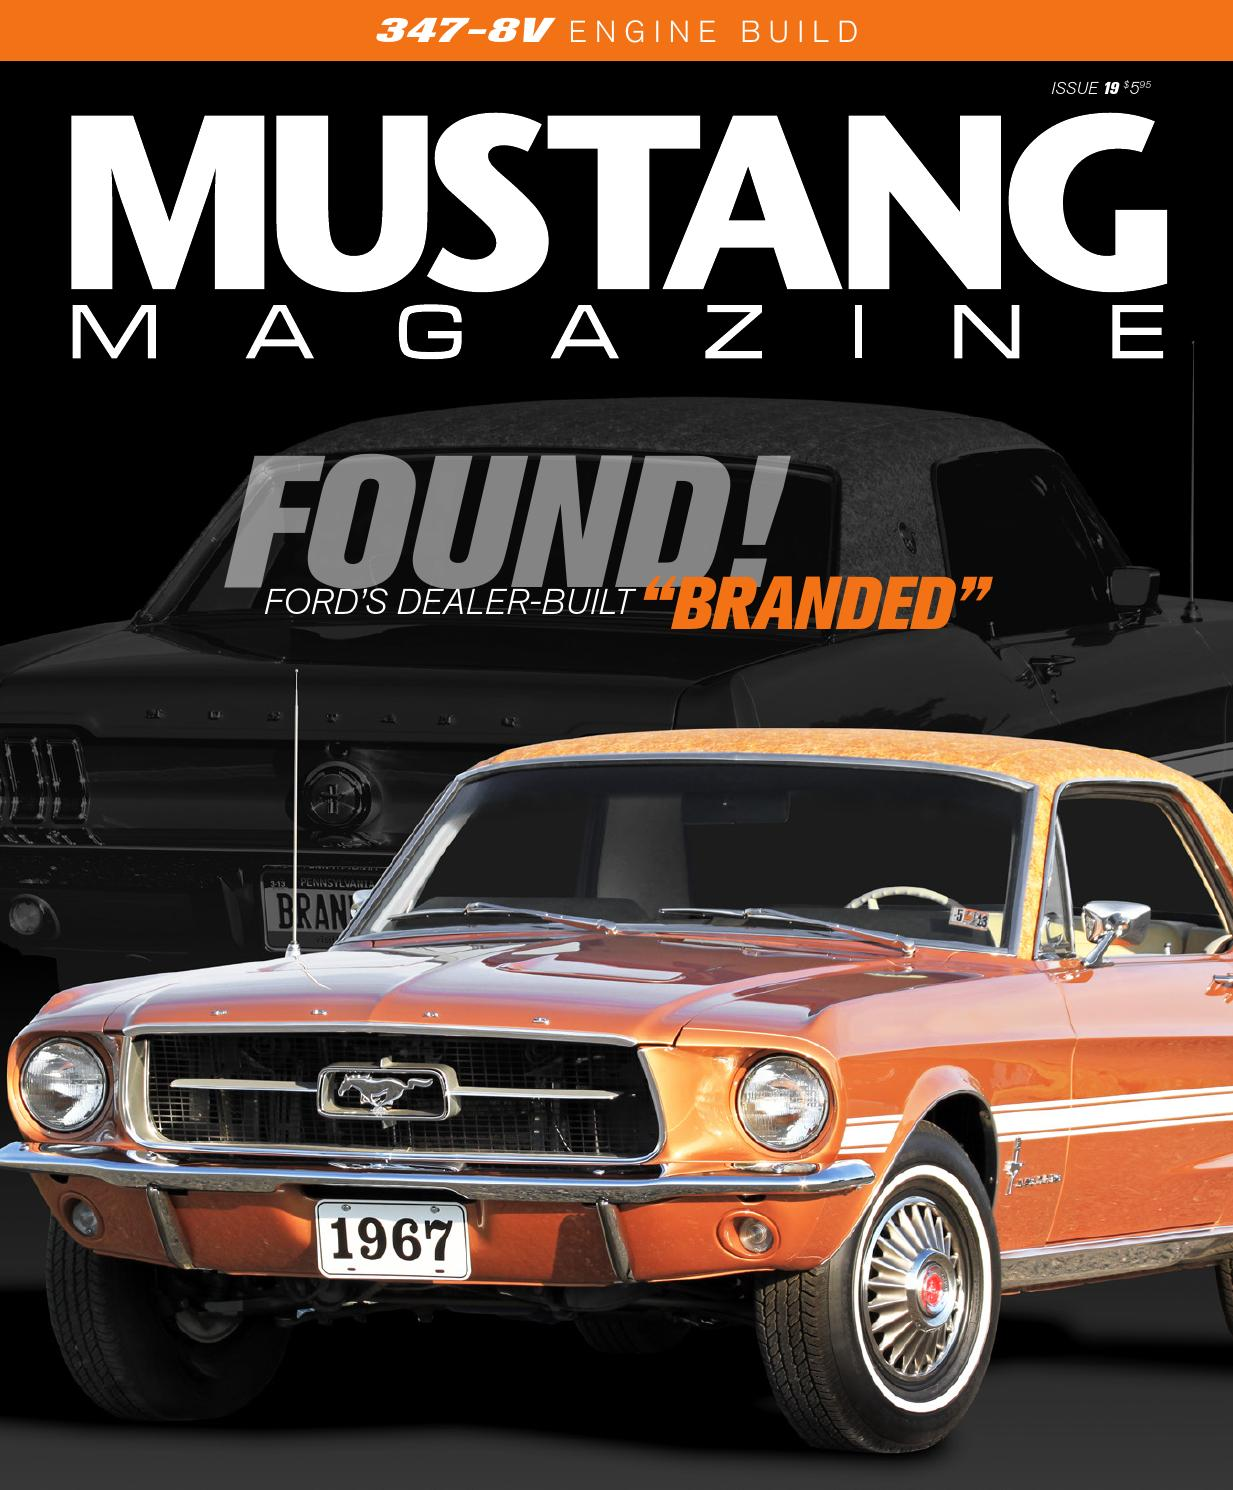 How To Fix Ac In Car >> Mustang Magazine | Issue 19 by Mustang Magazine - Issuu